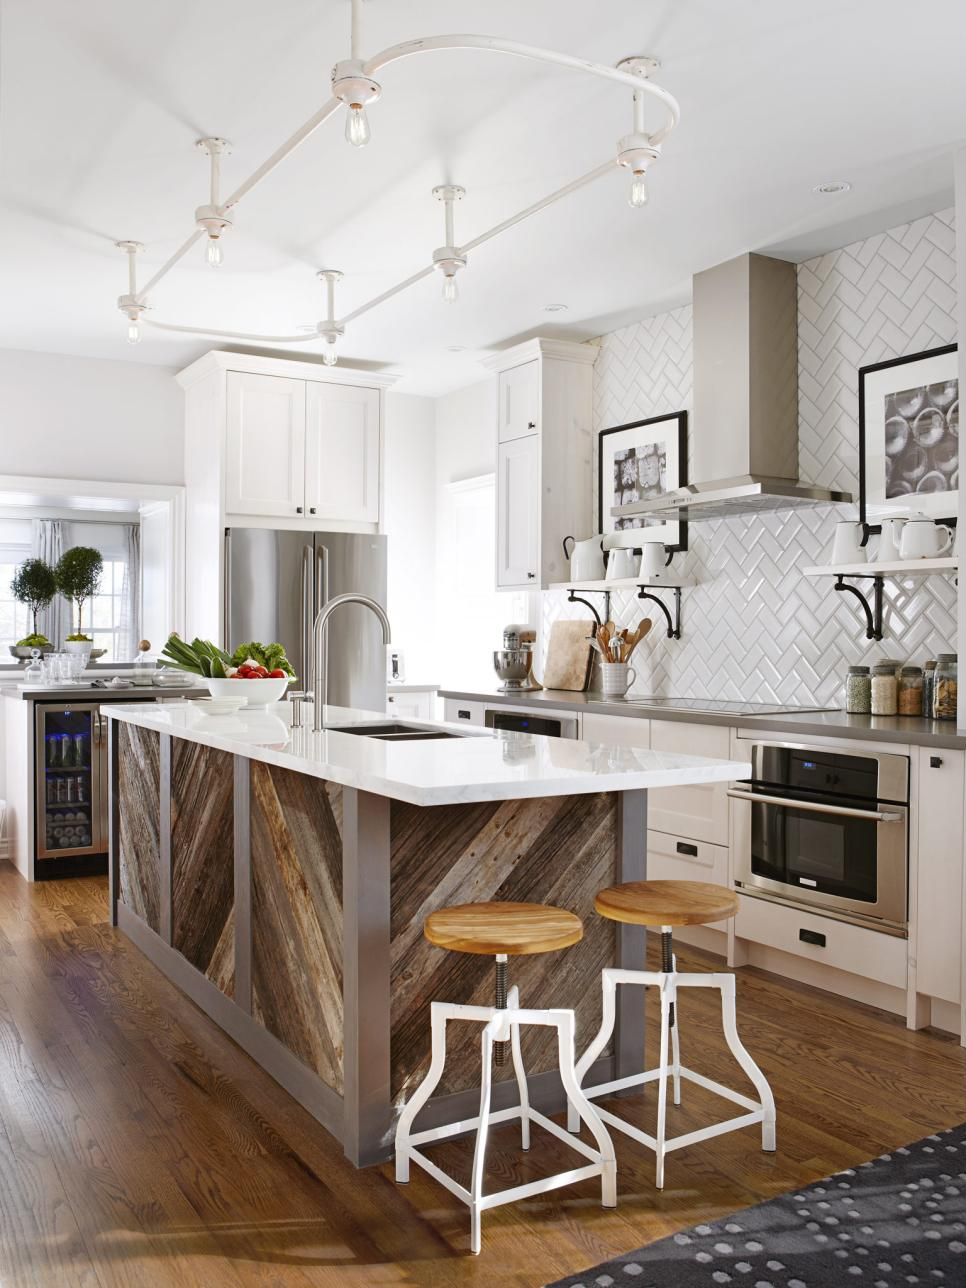 20 dreamy kitchen islands hgtv for Kitchen designs island